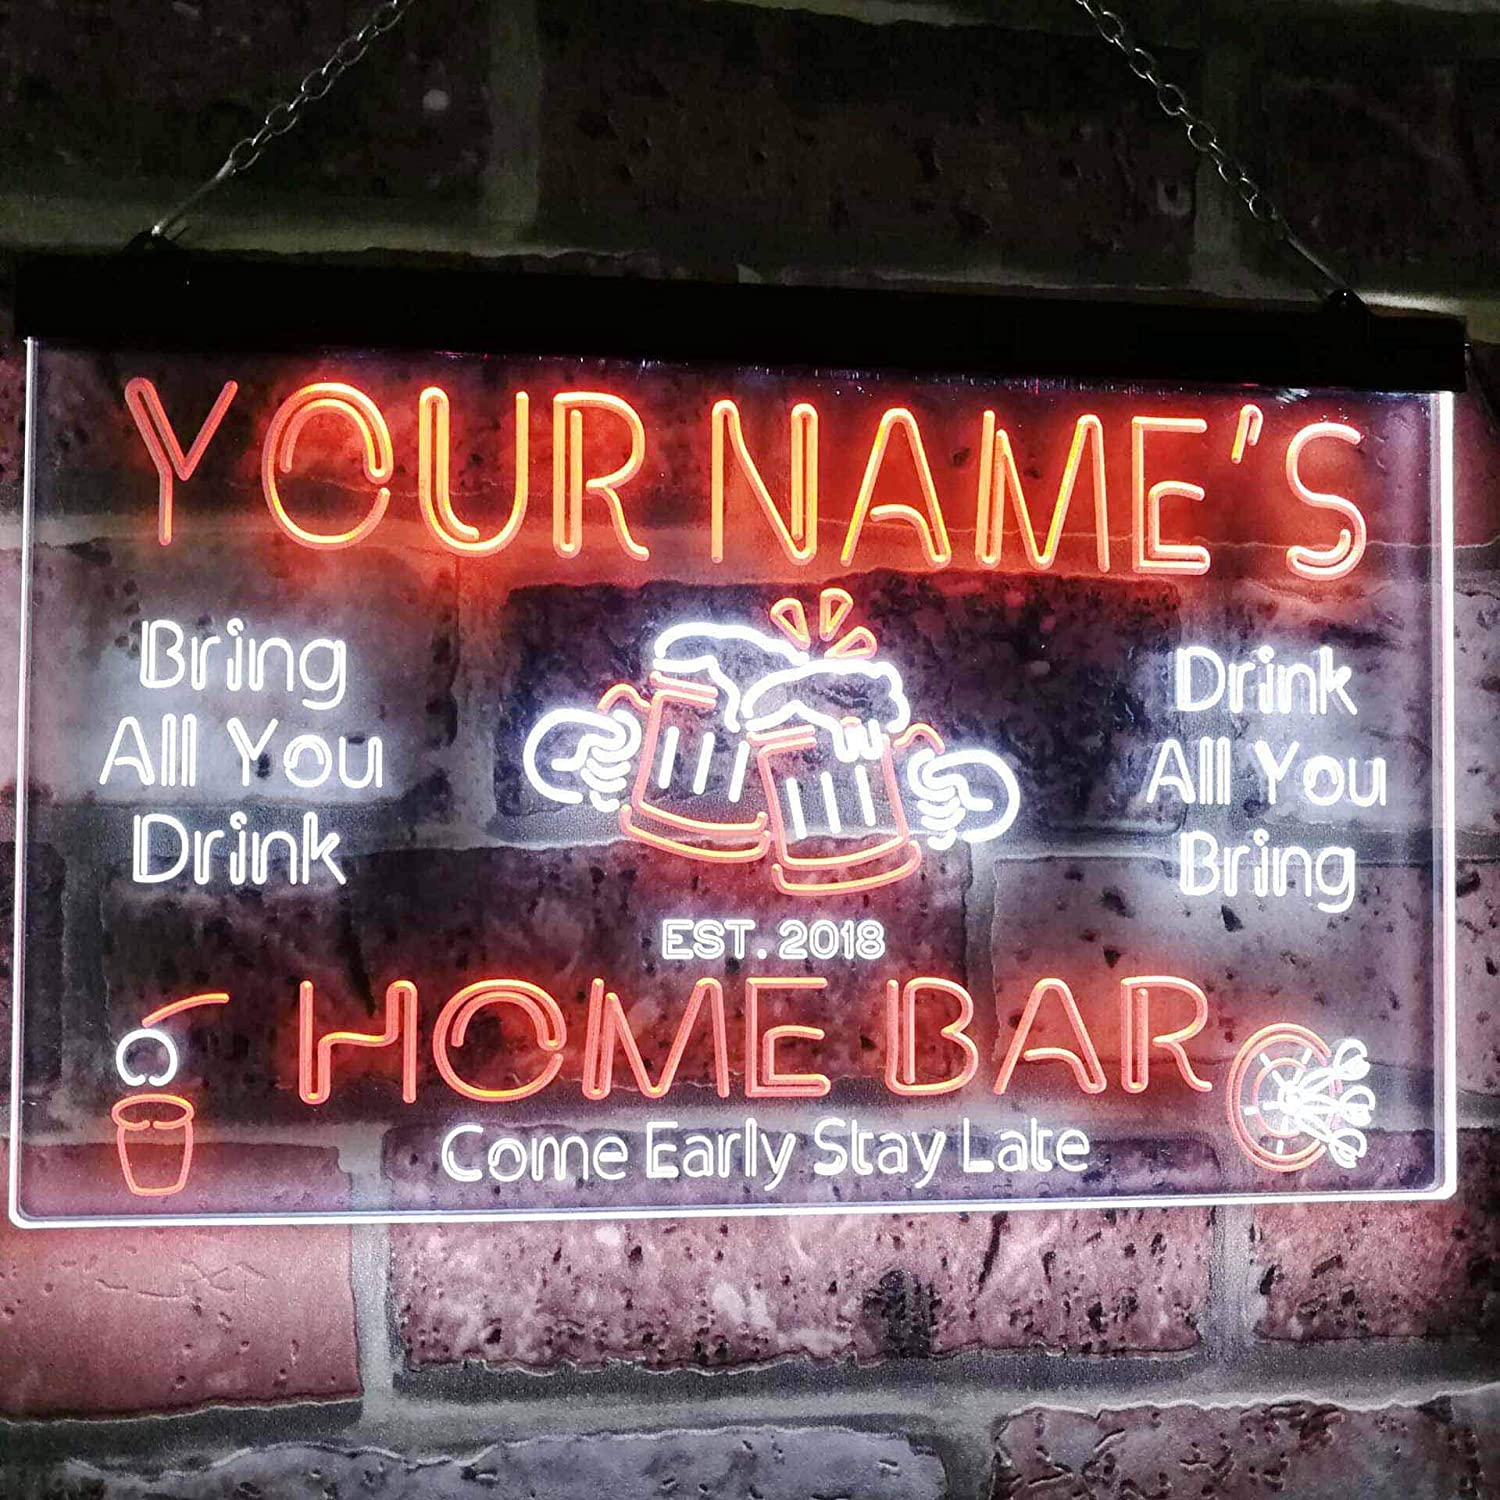 ADVPRO Personalized Your Name Custom Home Bar Beer Established Year Dual Color LED Neon Sign White /& Green 16 x 12 Inches st6s43-p1-tm-wg